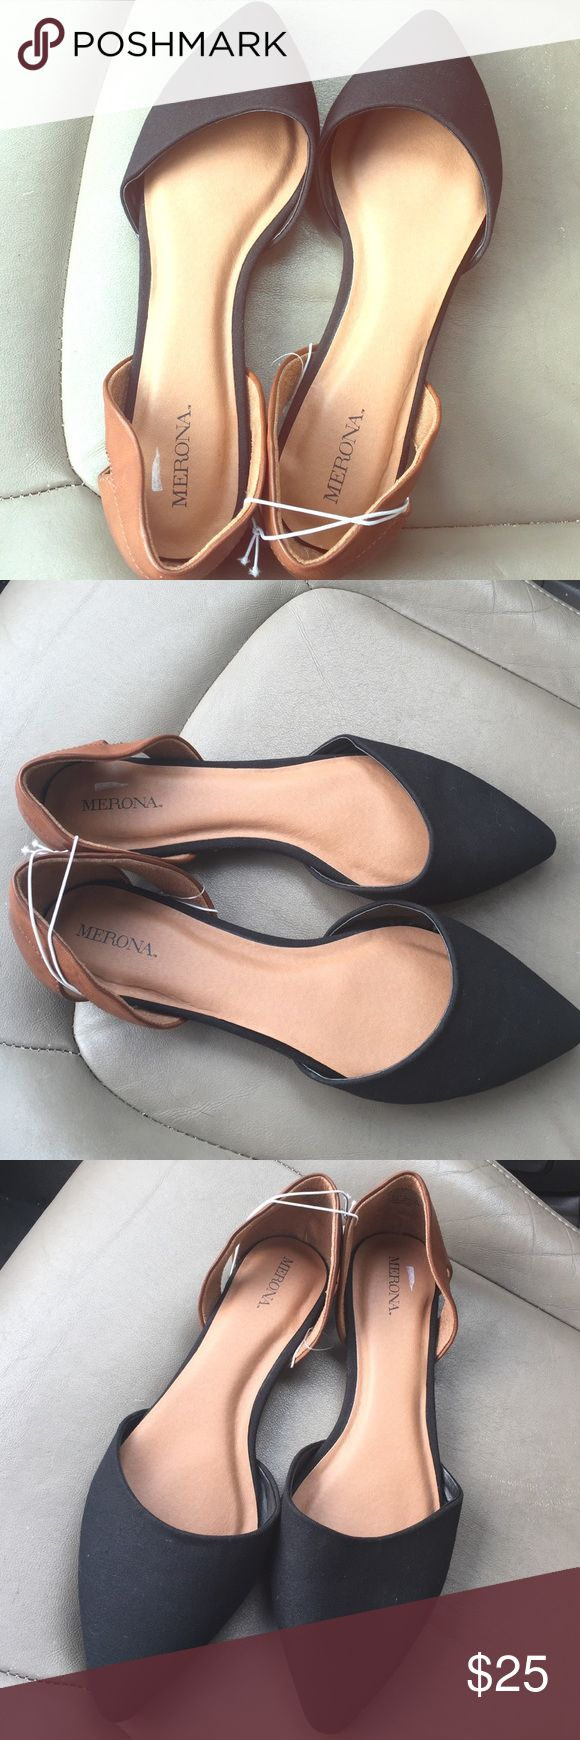 Brand new trendy black & brown pointed flats Brand new, never worn black & brown pointed flats - superrrr cute shoes! perfect for work, a casual day or night out! size 11 Shoes Flats & Loafers